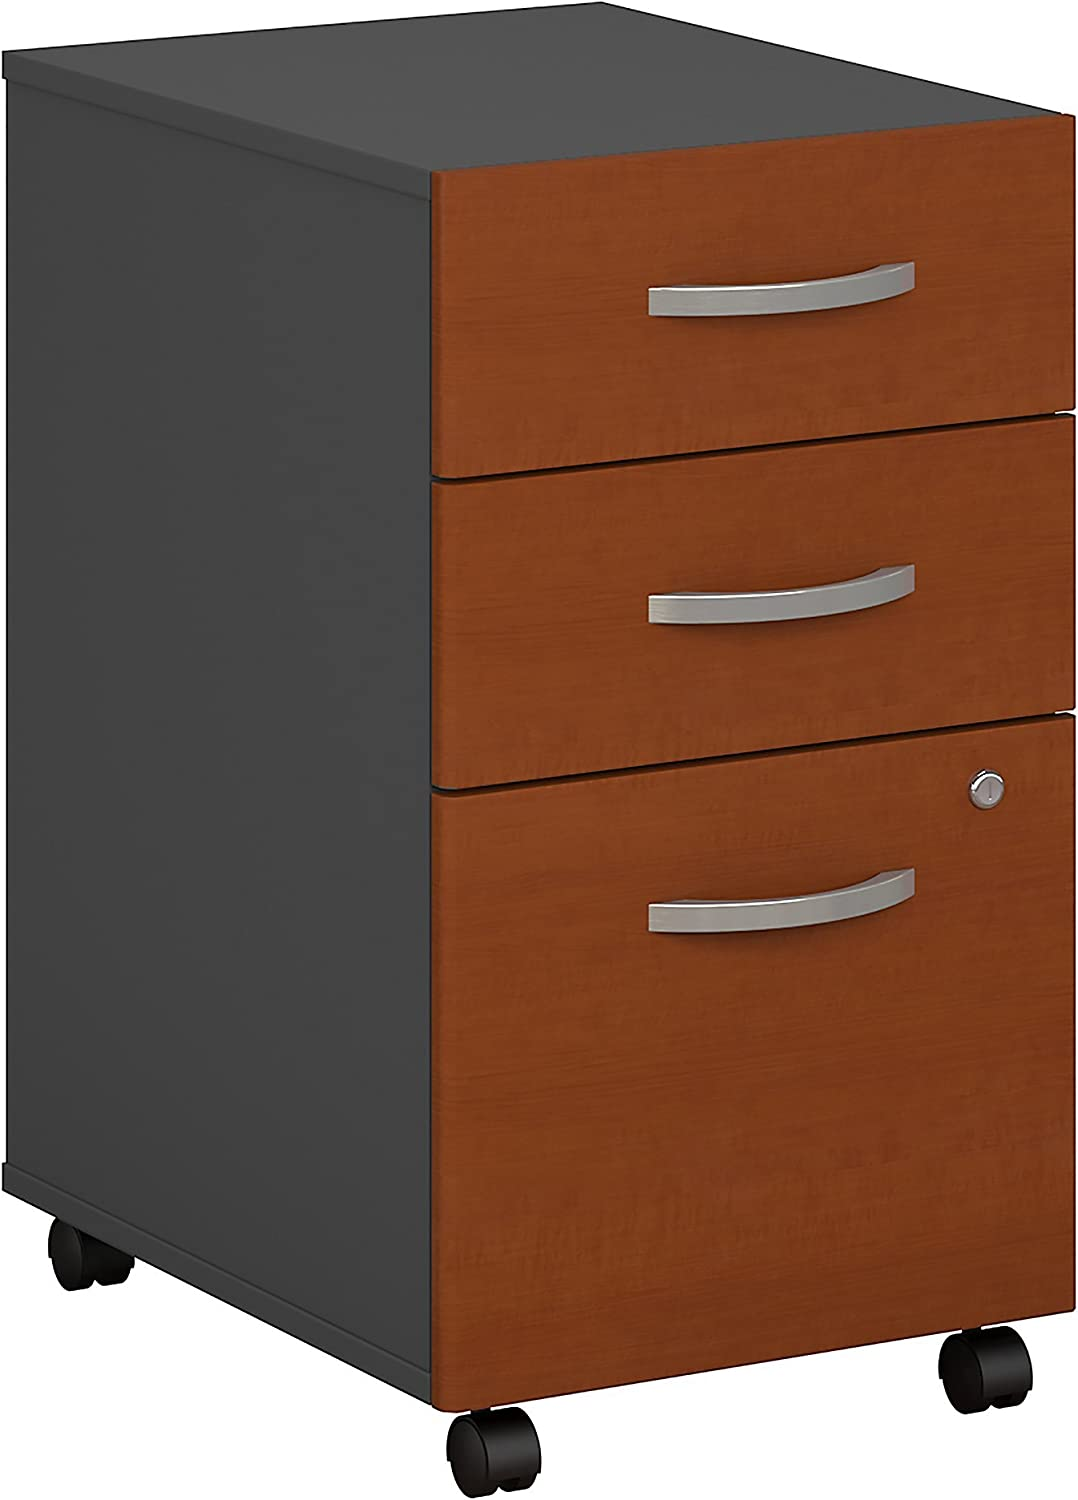 Bush Business Furniture Series C 3 Drawer Mobile File Cabinet in Auburn Maple